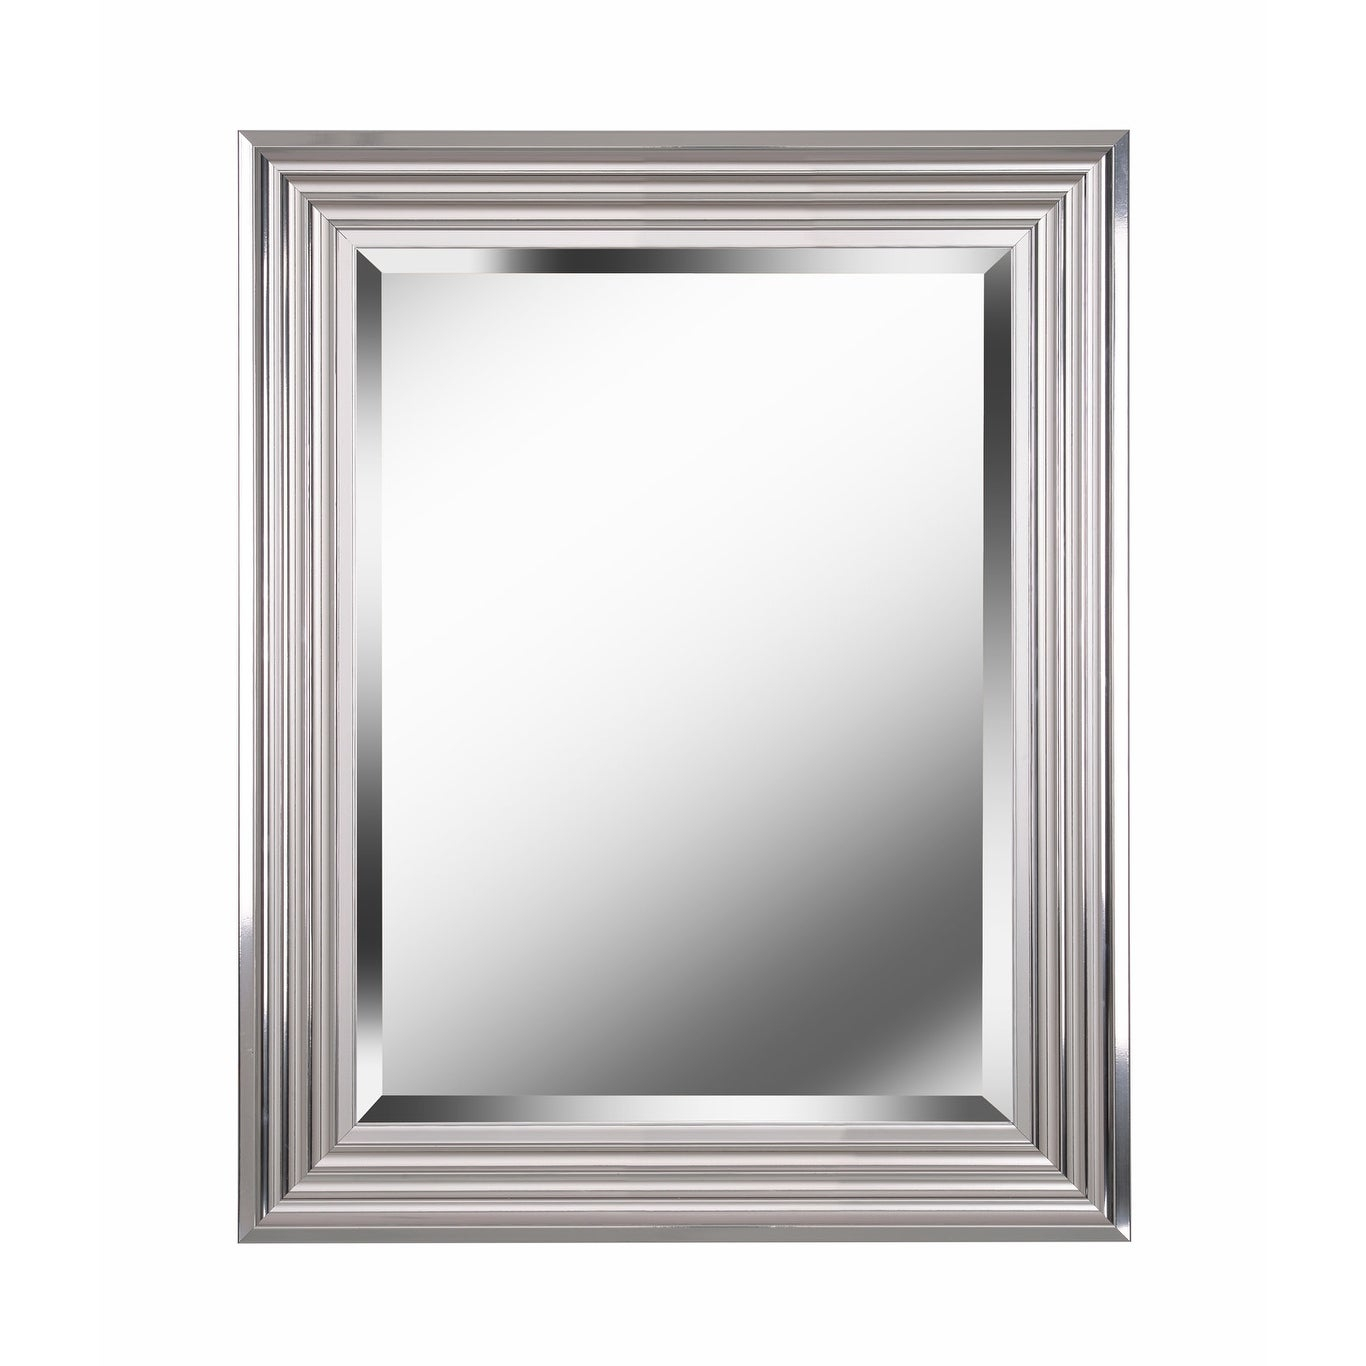 "Kenroy Home 60320 Lyonesse 30"" X 24"" Rectangular Beveled Accent Mirror Within Traditional Beveled Accent Mirrors (Image 7 of 20)"